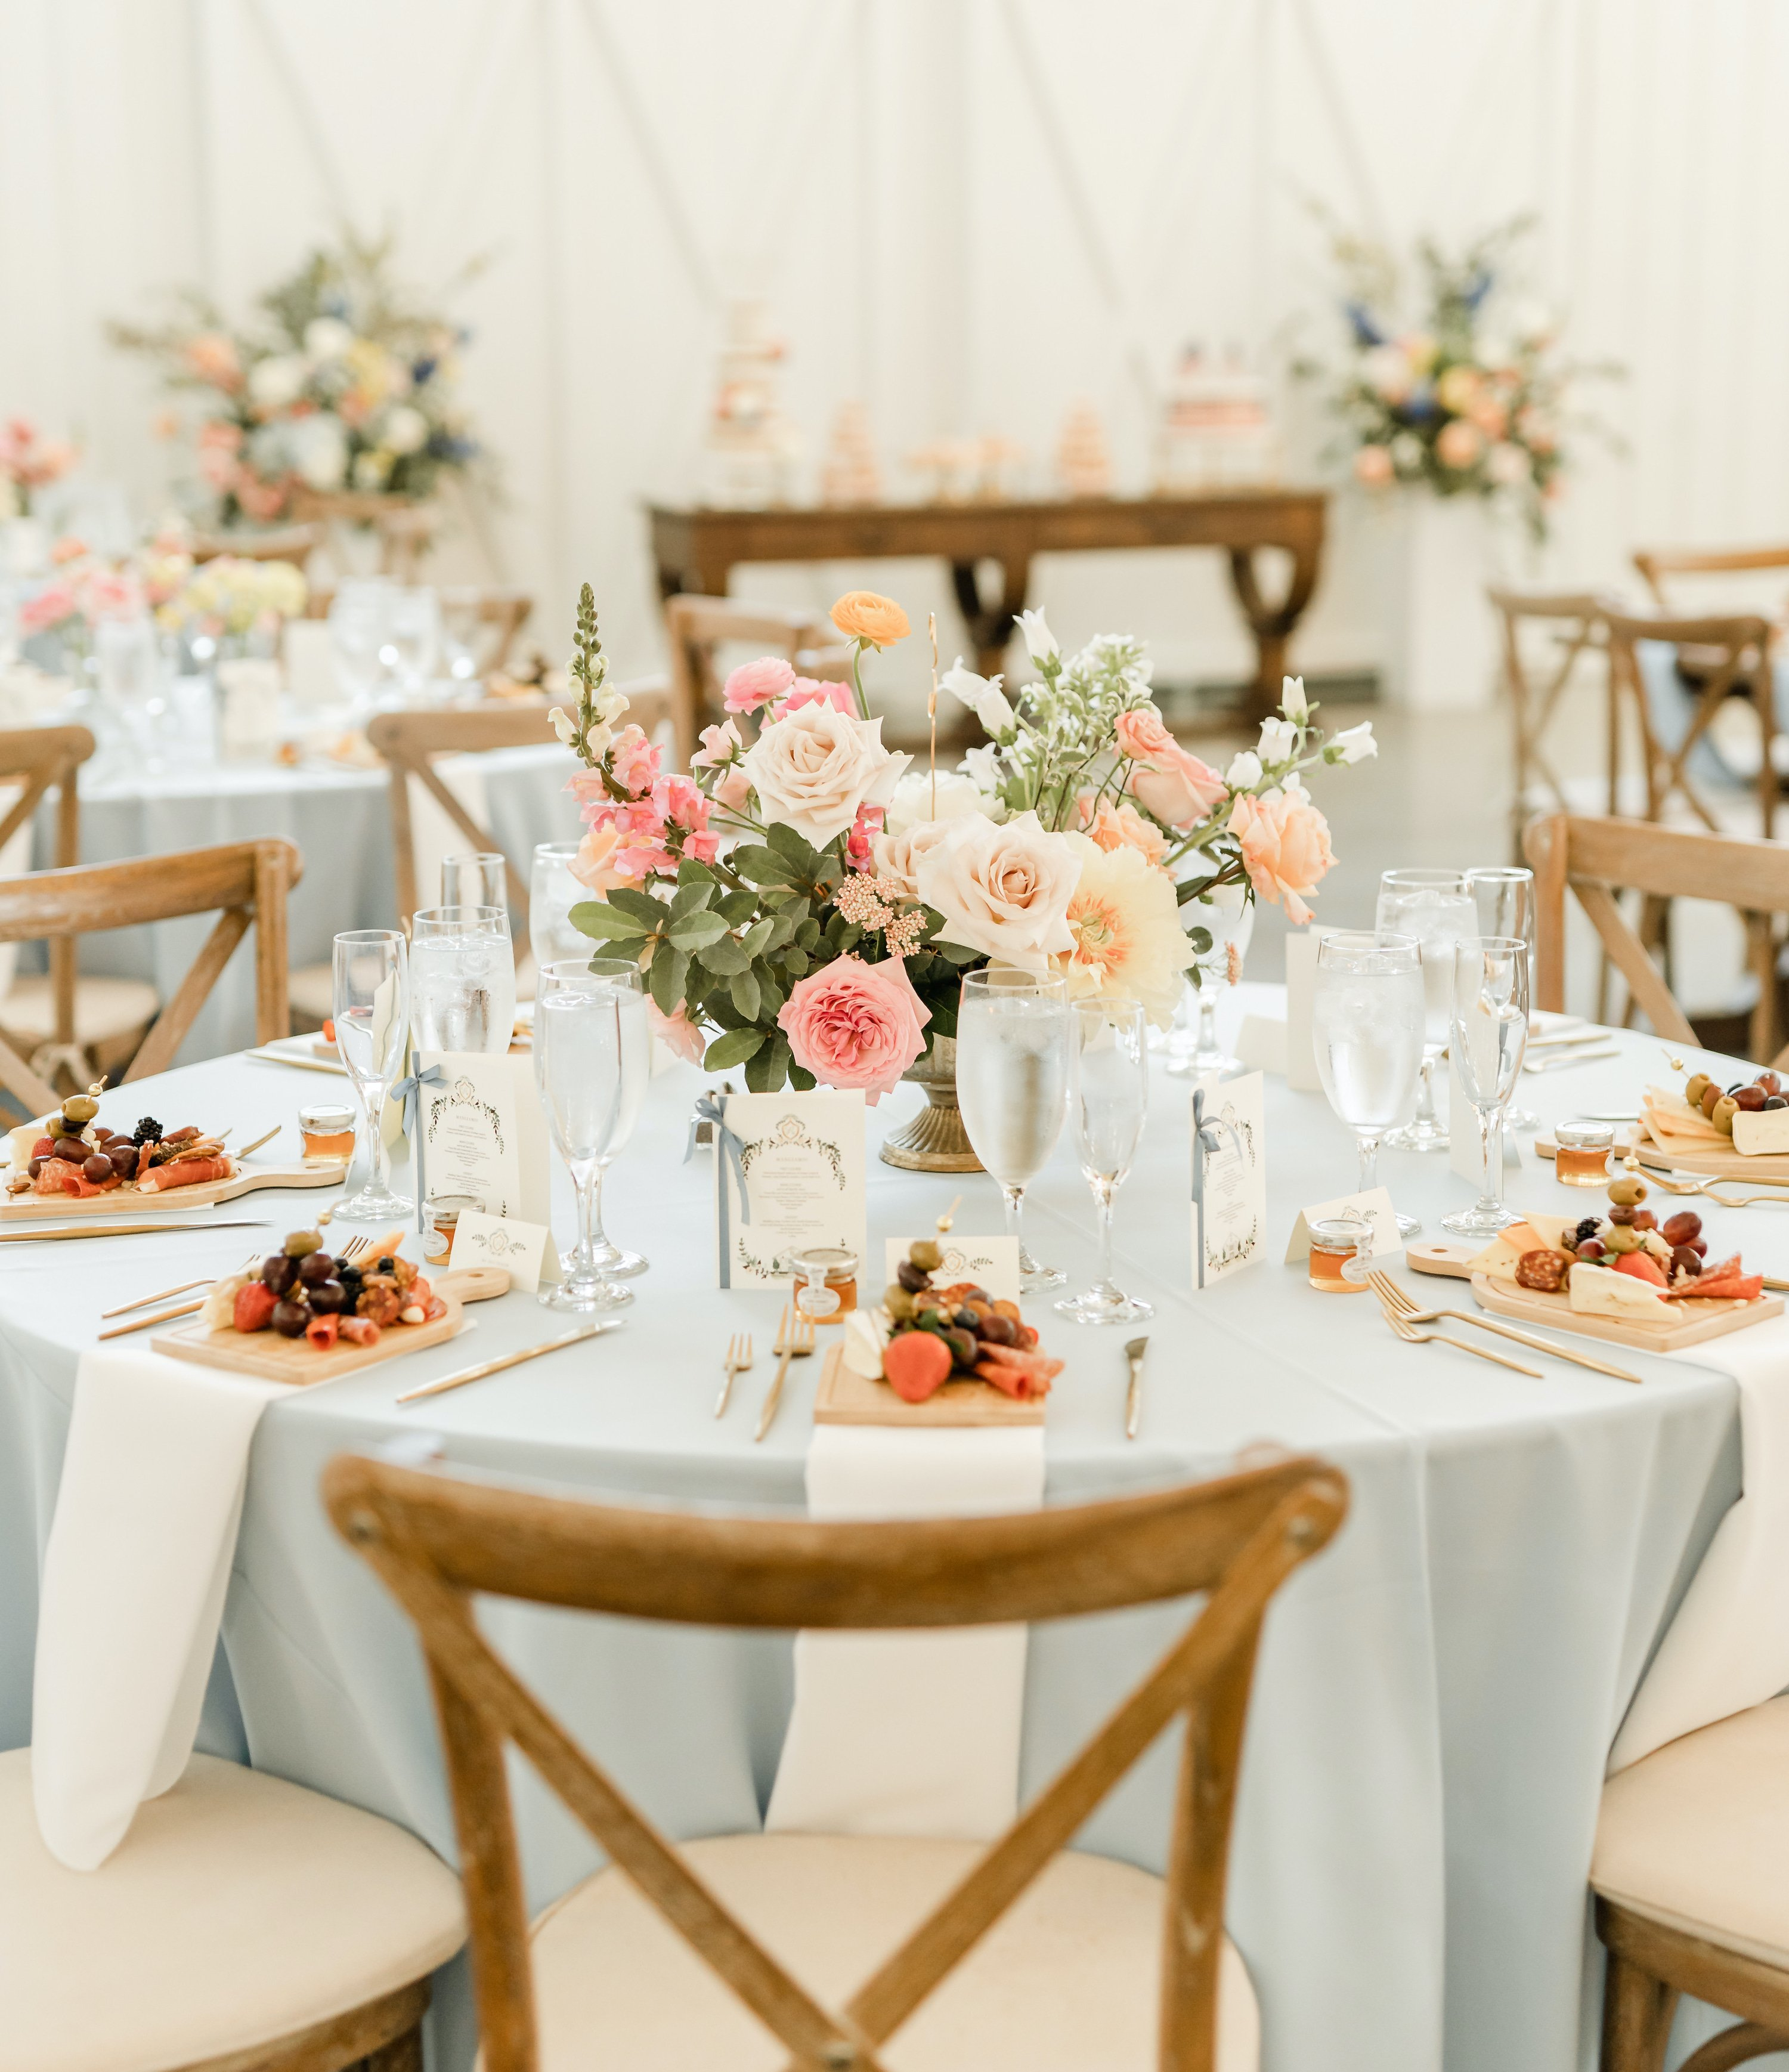 The reception tables are set with a light blue table cloth and a charcuterie board is placed at each guests seat, who are close friends of the bride and groom.